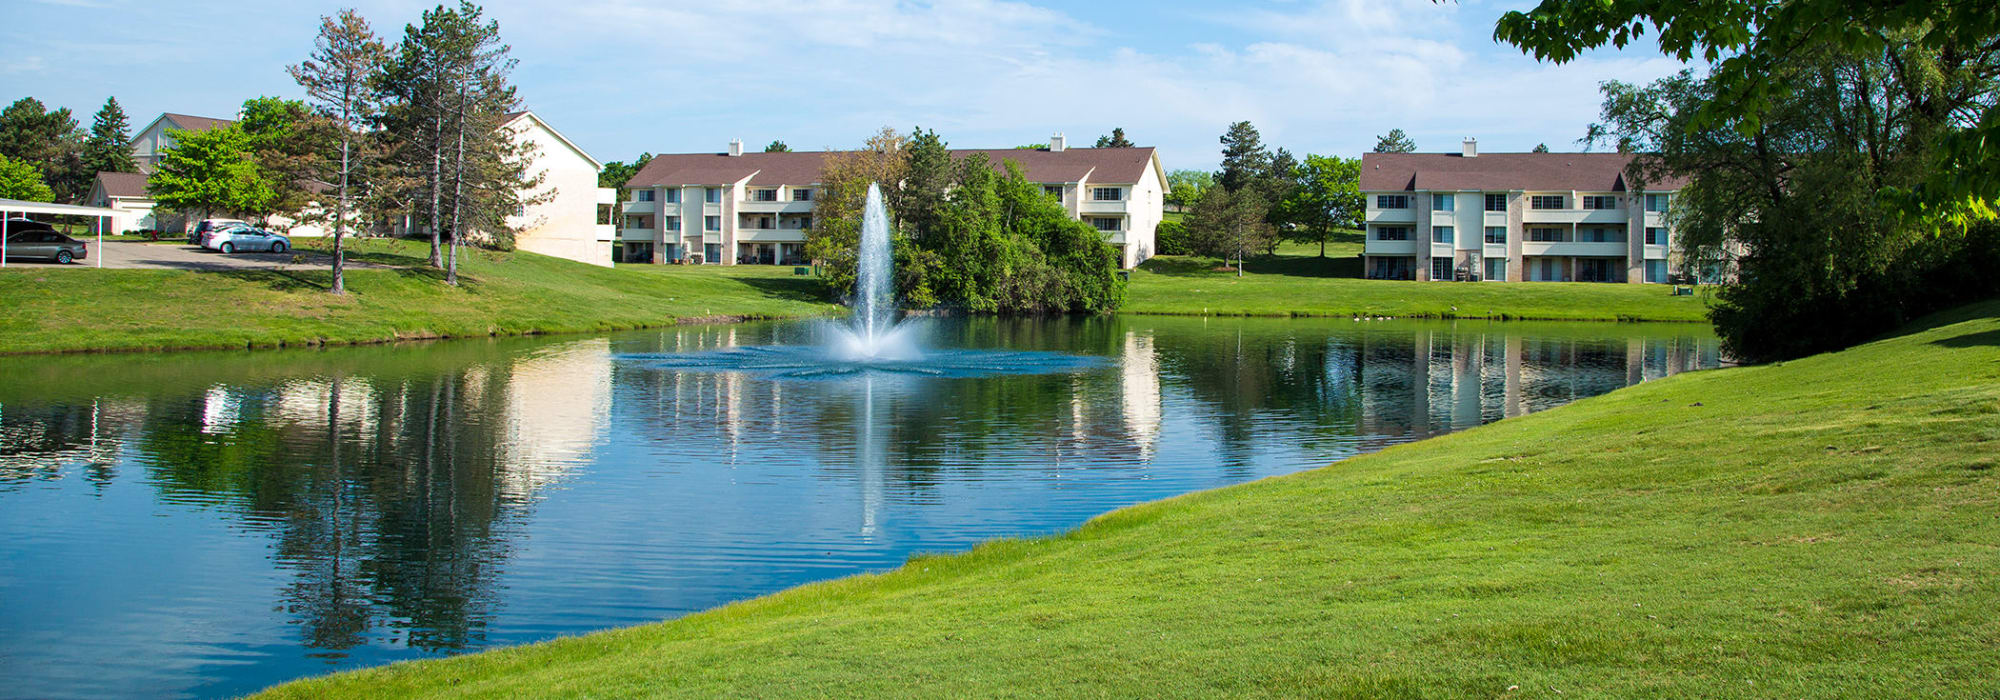 Our apartments at Aldingbrooke in West Bloomfield, Michigan